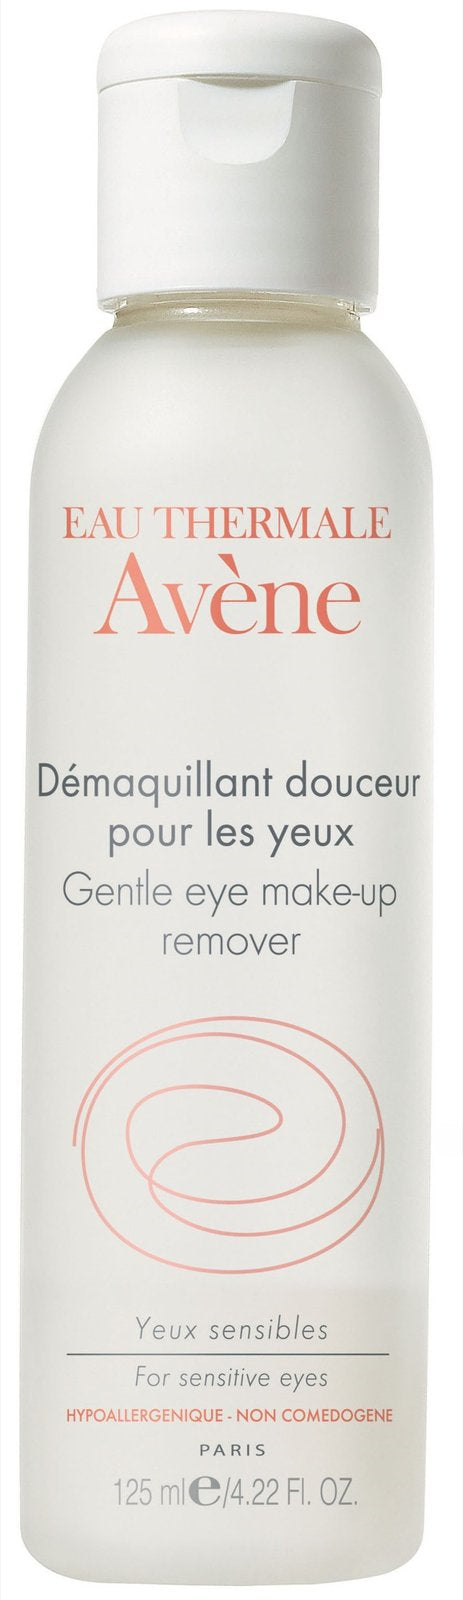 Avene Gentle Eye Make-up Remover, (125ml)